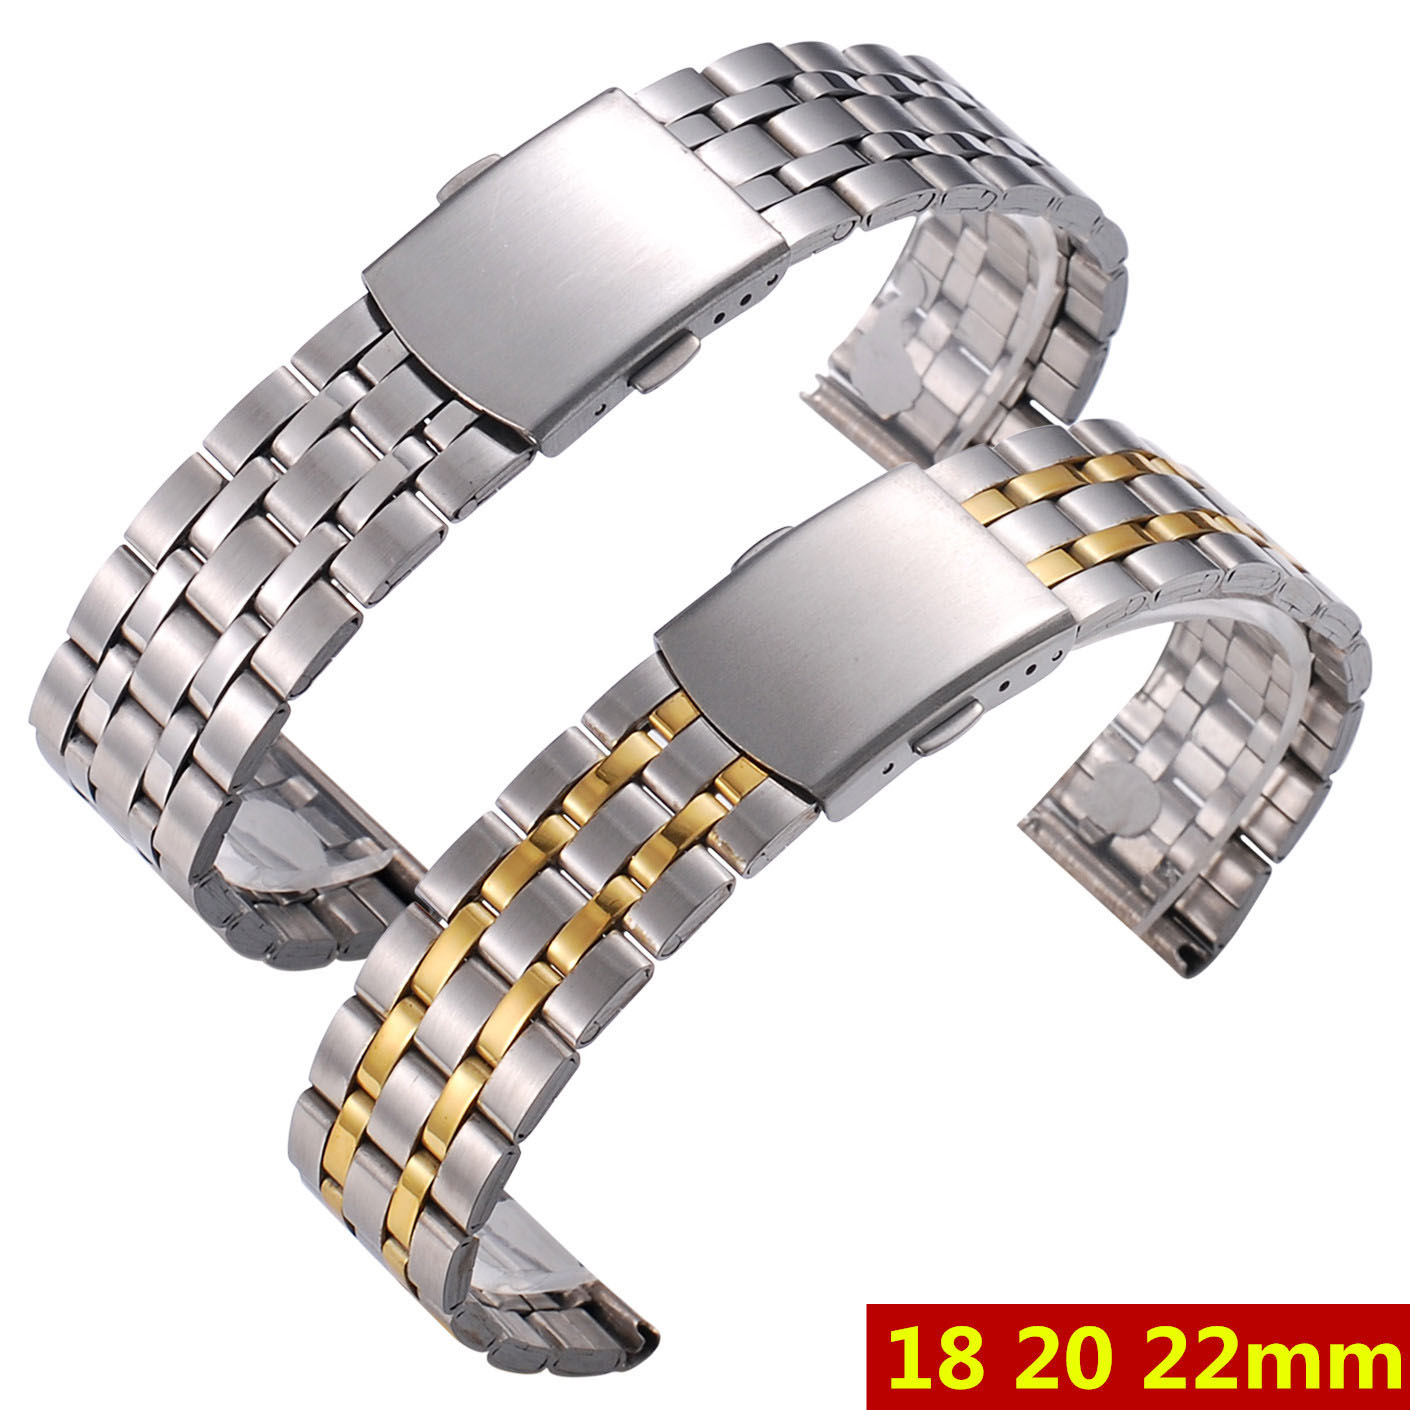 Silver Gold Men Watch Band Strap Stainless Stell Deployment Clasp Speed Master Wrist Women Band 18mm 20mm 22mm Accessories